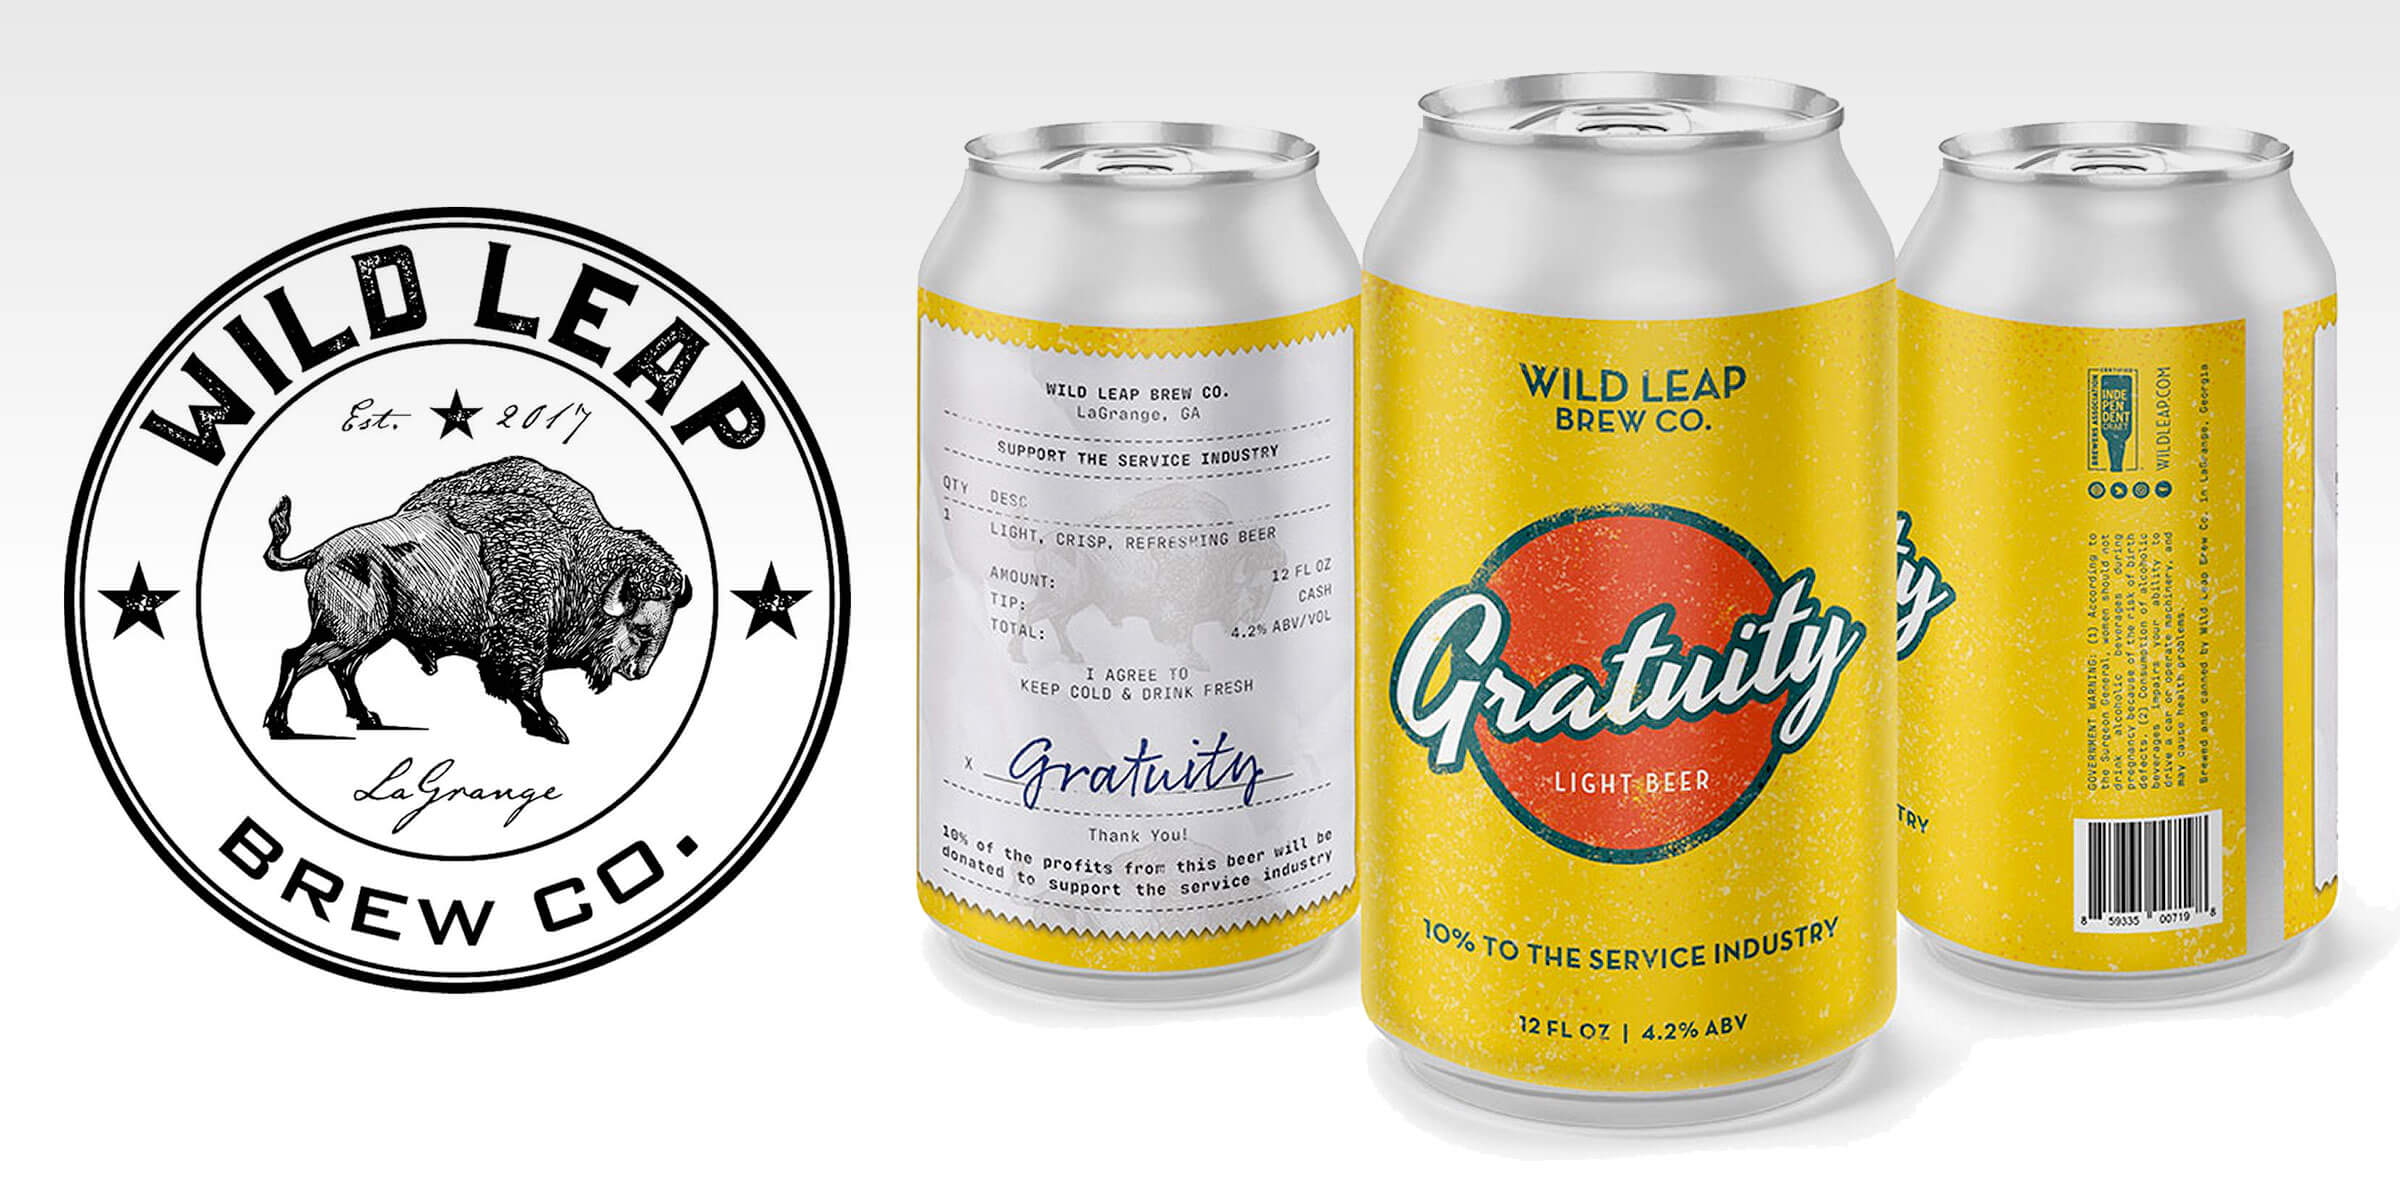 Wild Leap Brew Co. released Gratuity, a craft beer devoted to supporting service industry workers who have been hit hard by the worldwide COVID-19 crisis.